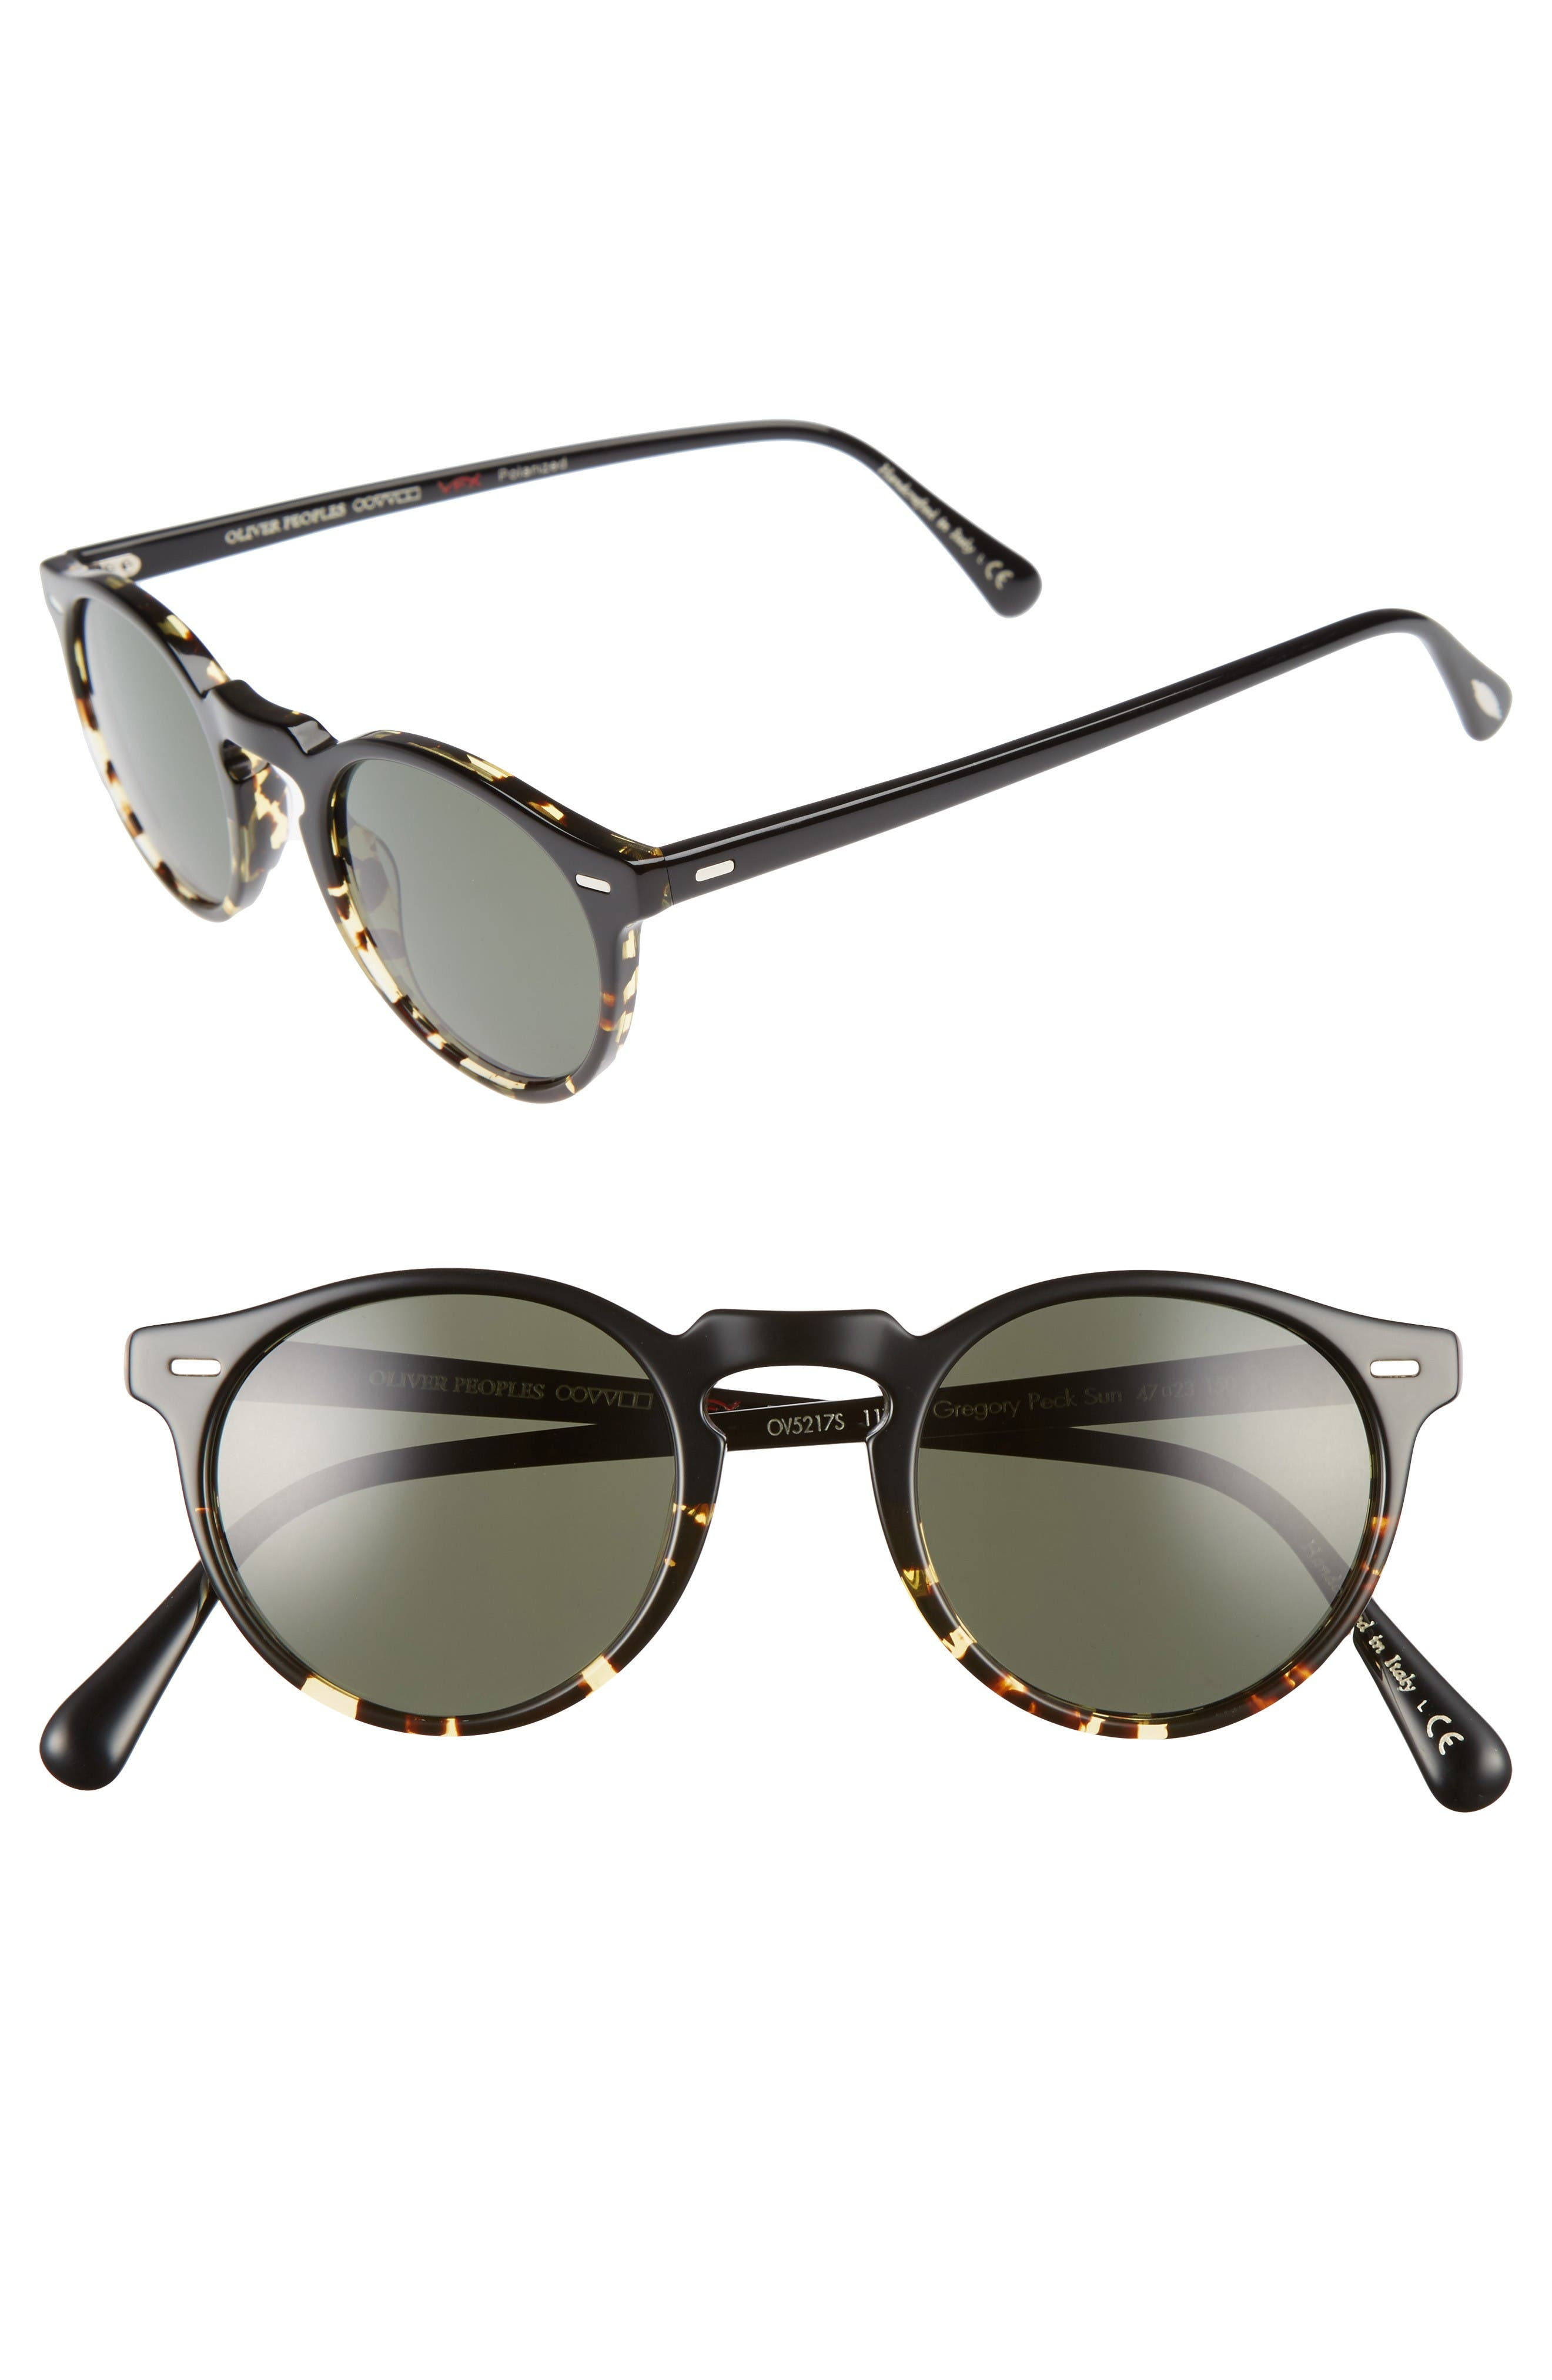 Oliver Peoples Gregory Peck 47mm Retro Sunglasses